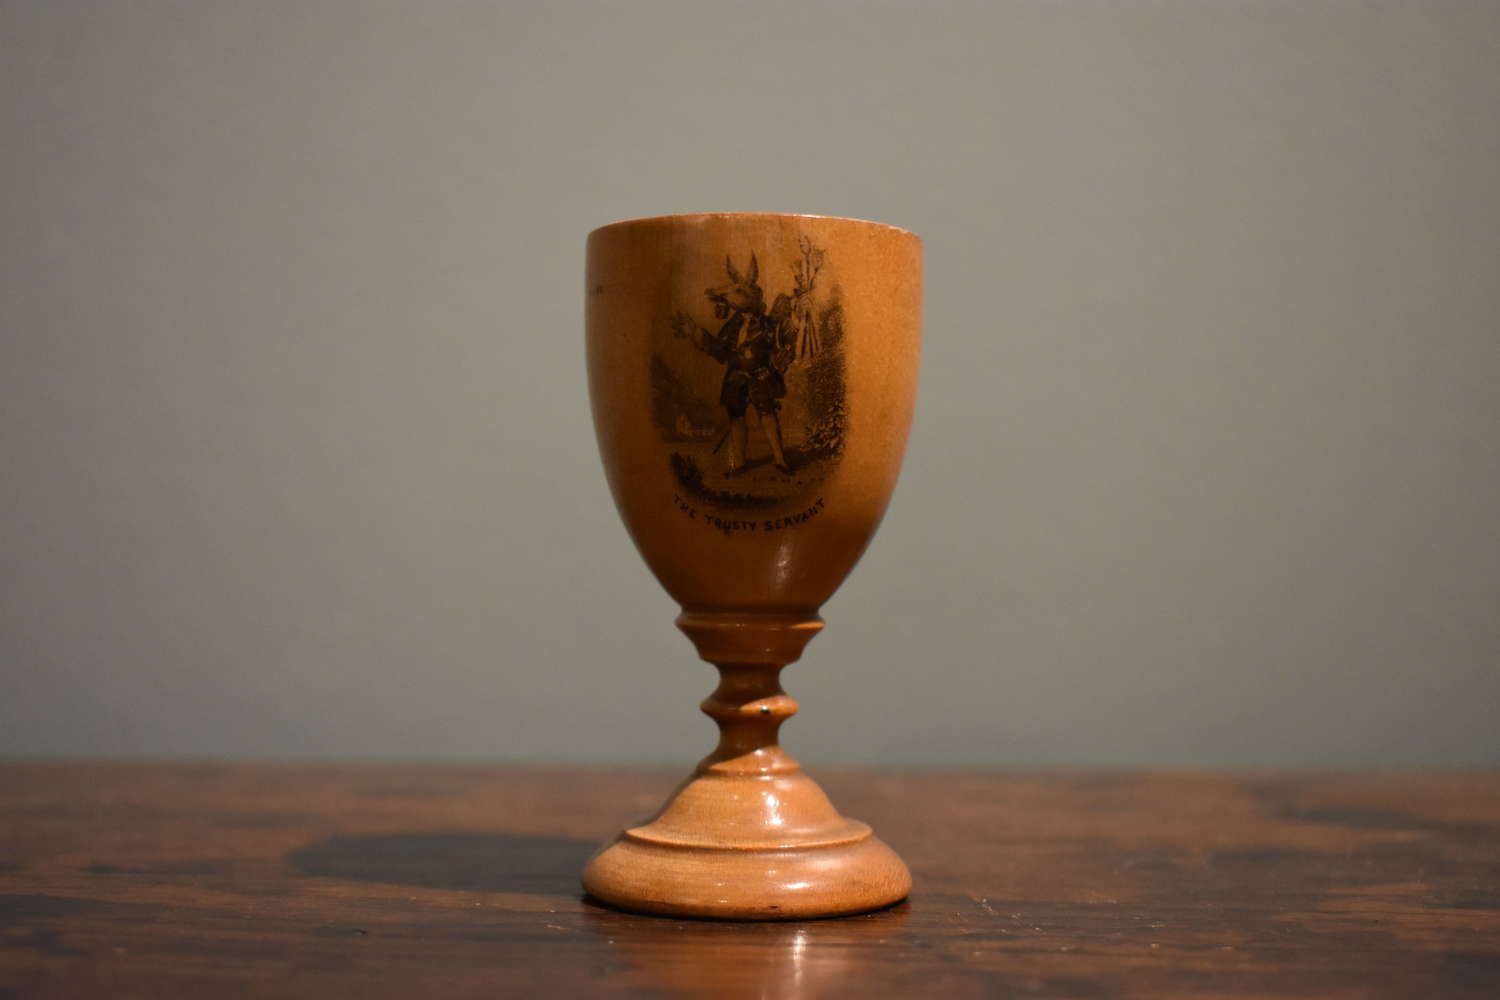 19th c. Mauchline ware Egg Cup depicting 'The Trusty Servant'